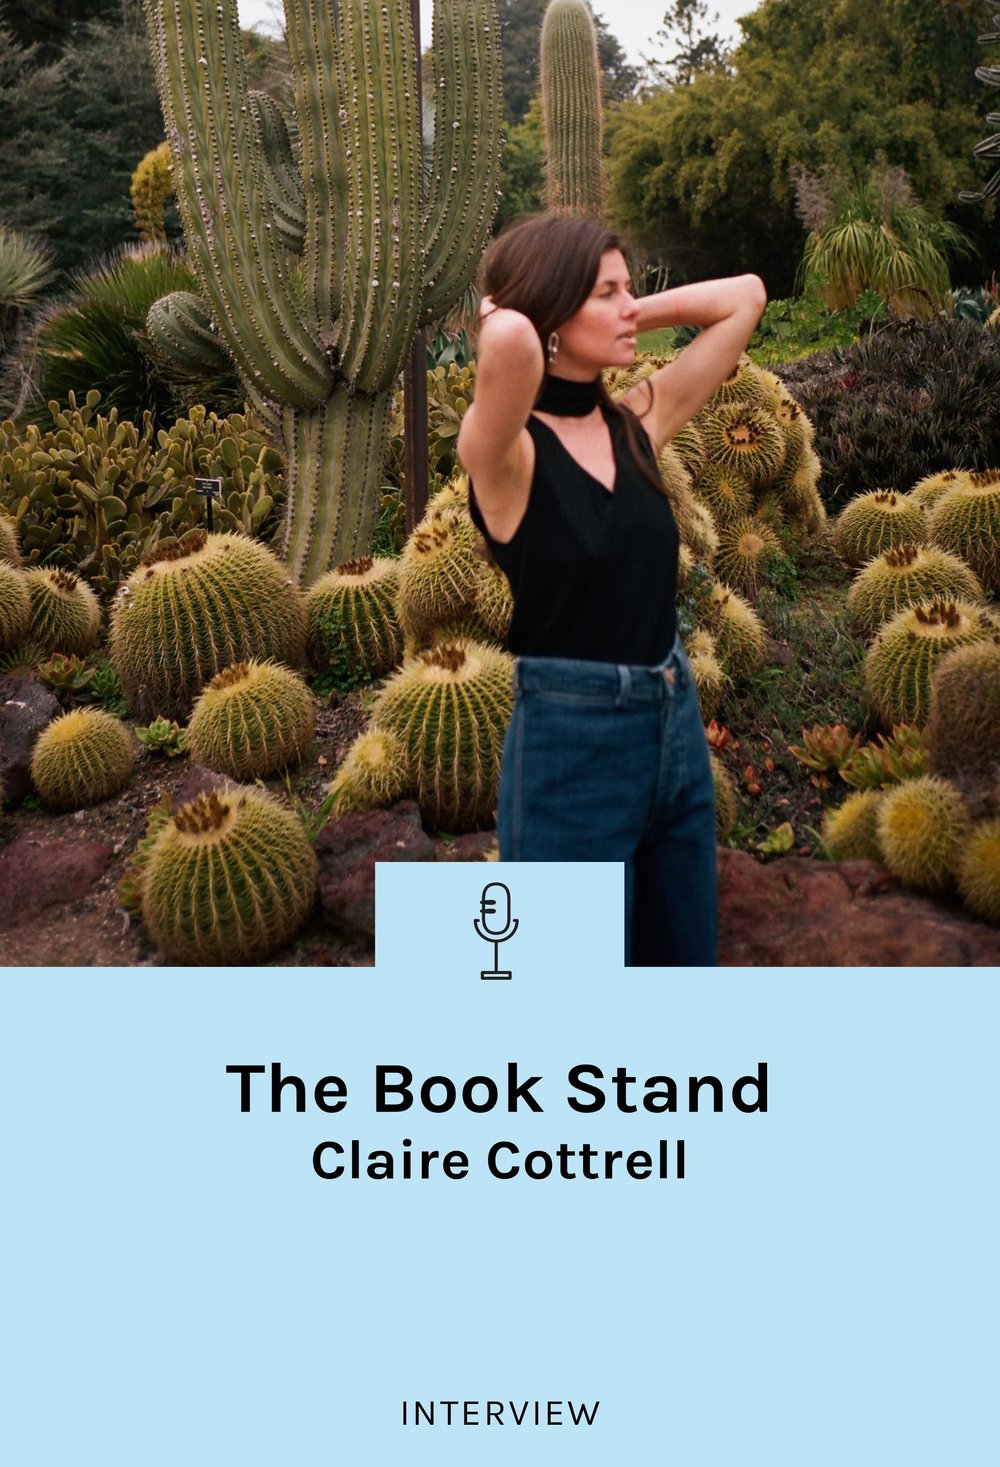 Lisa-says-gah-interview-claire-cottrell